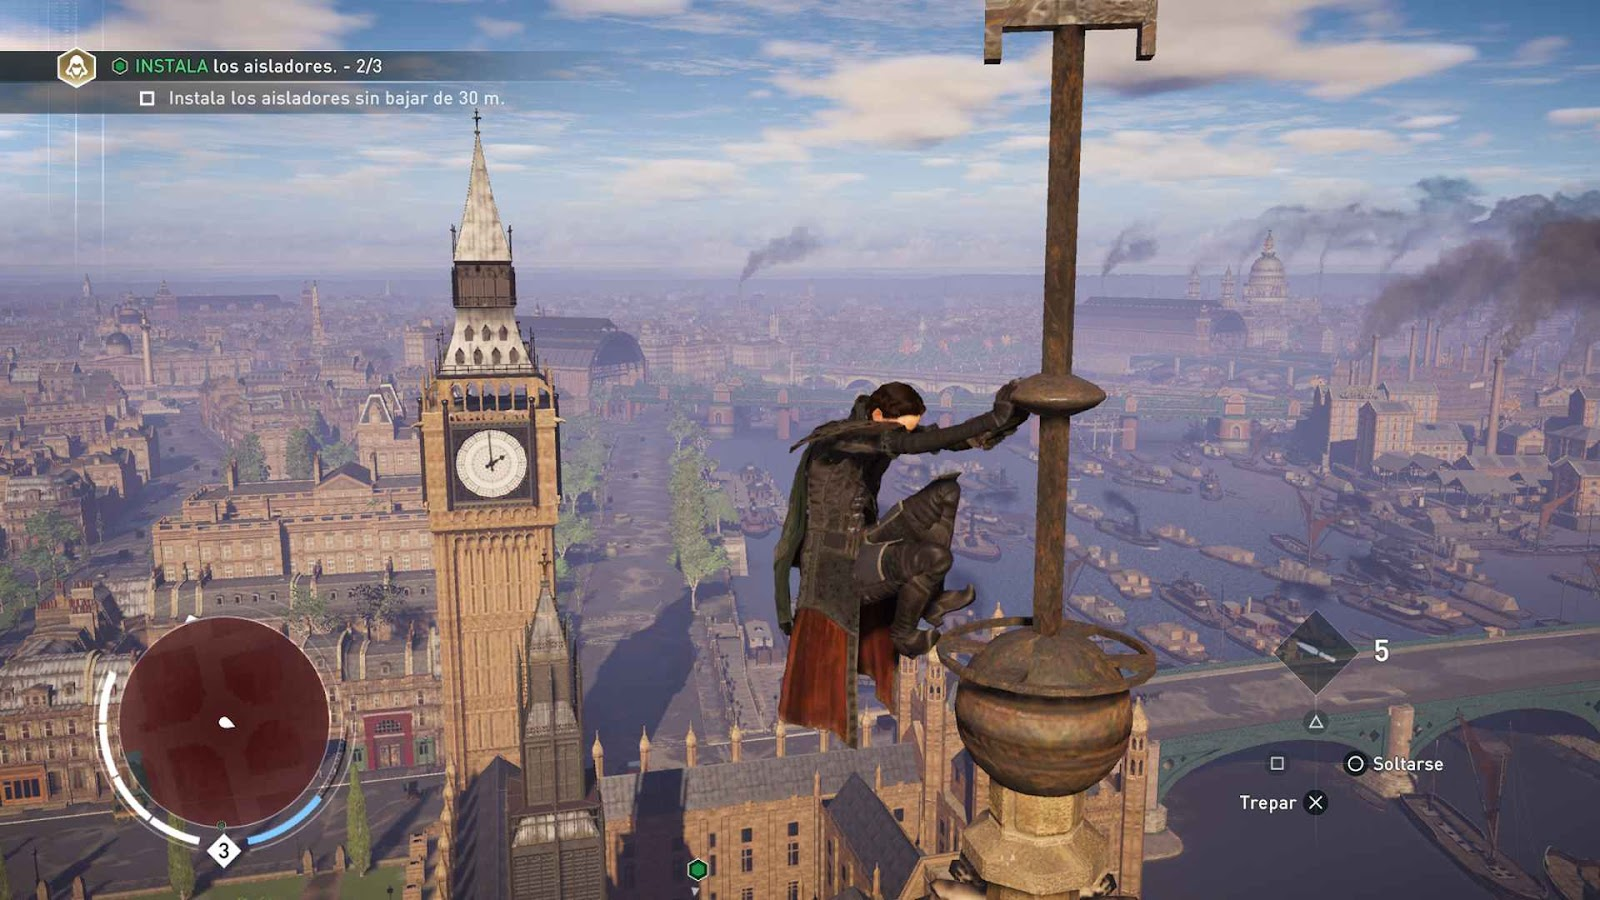 Another real-world location in video games is found in Assassin's Creed Syndicate, which is set in London.